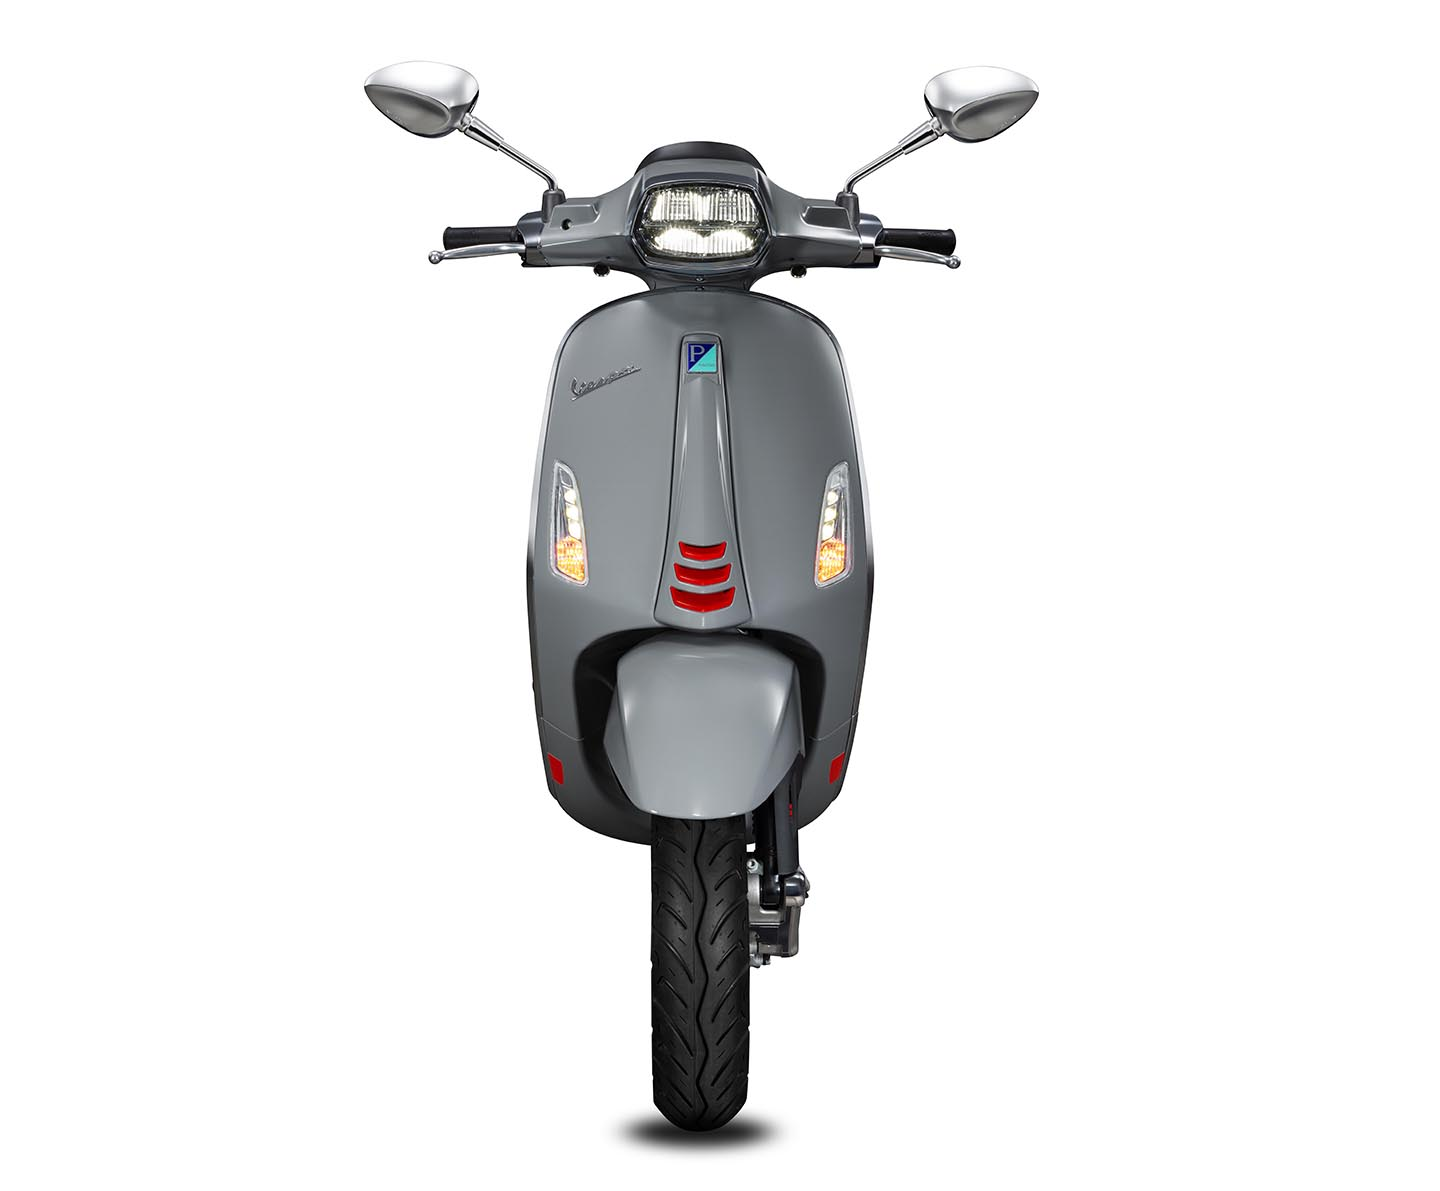 vespa-capture-one-catalog45033-copy.jpg